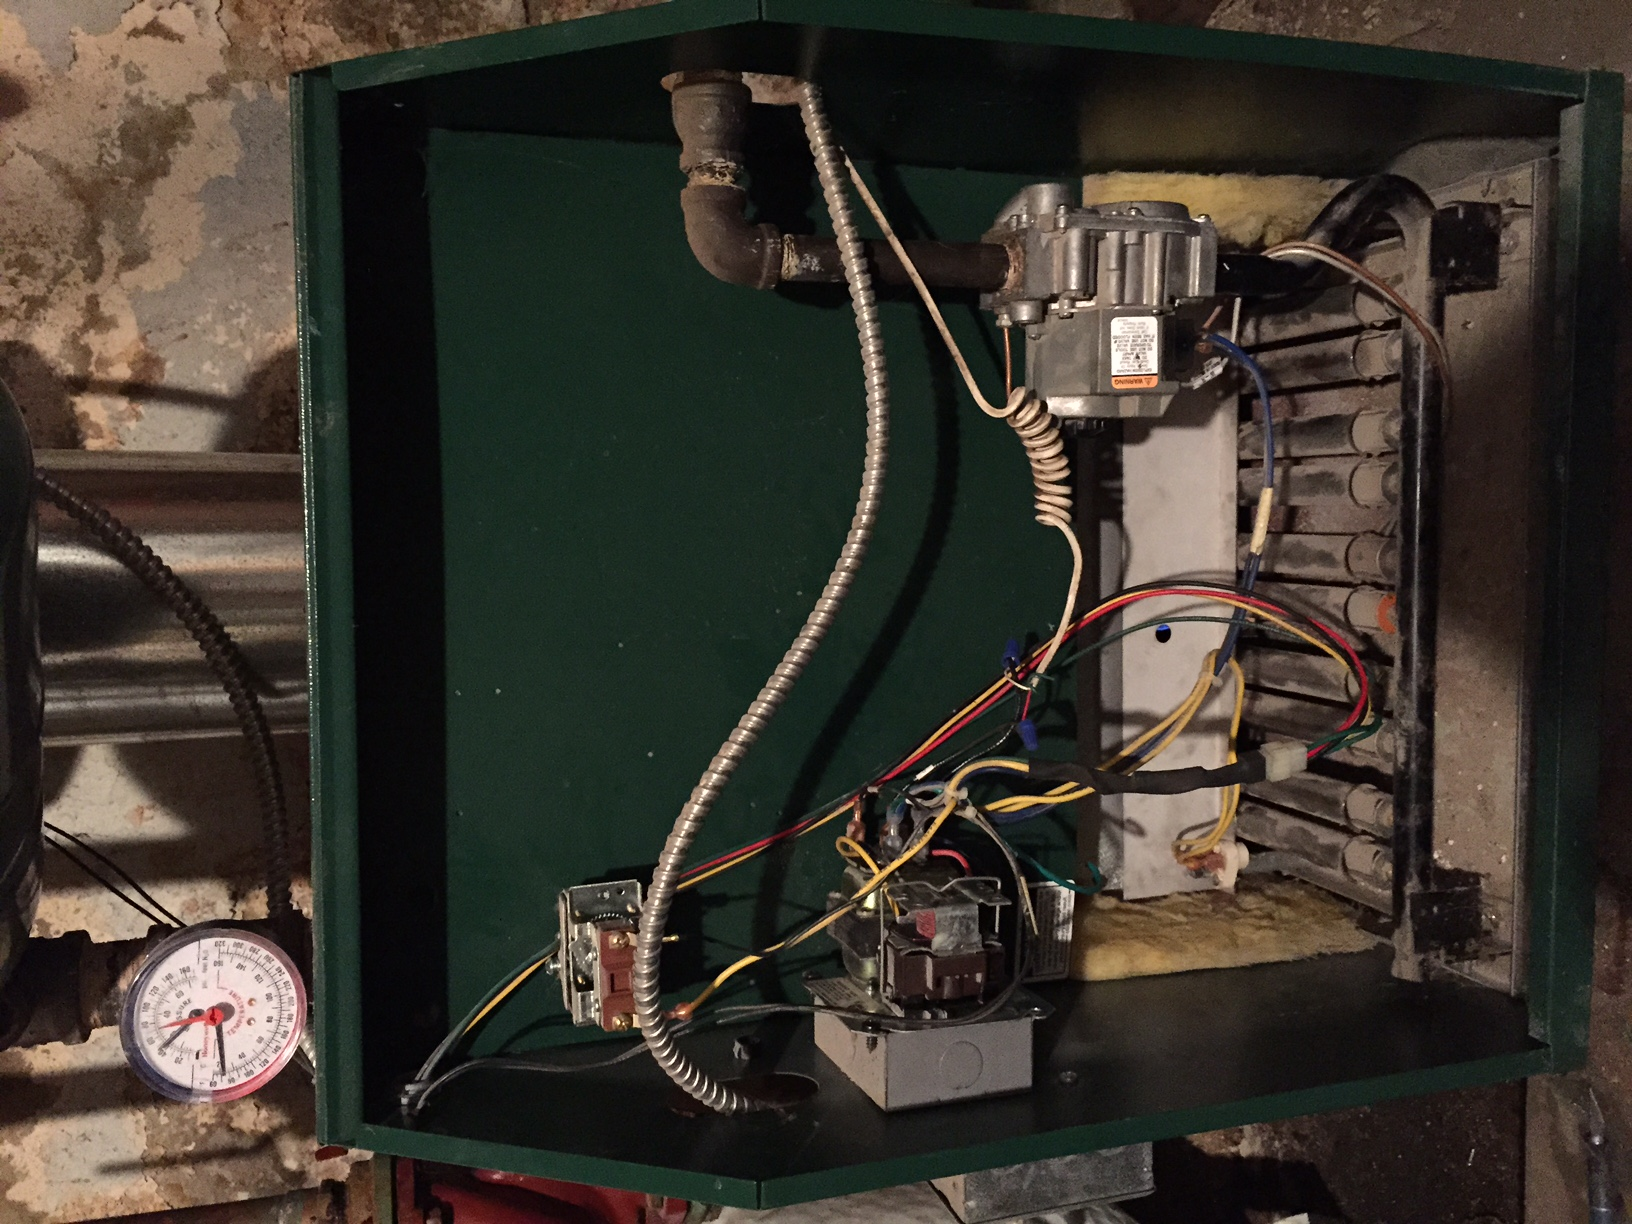 I Have A Gwa Gas Fired Water Boiler It Is 9 Years Old And Was Pennco Wiring Diagram 2014 10 25 193817 Img 0198